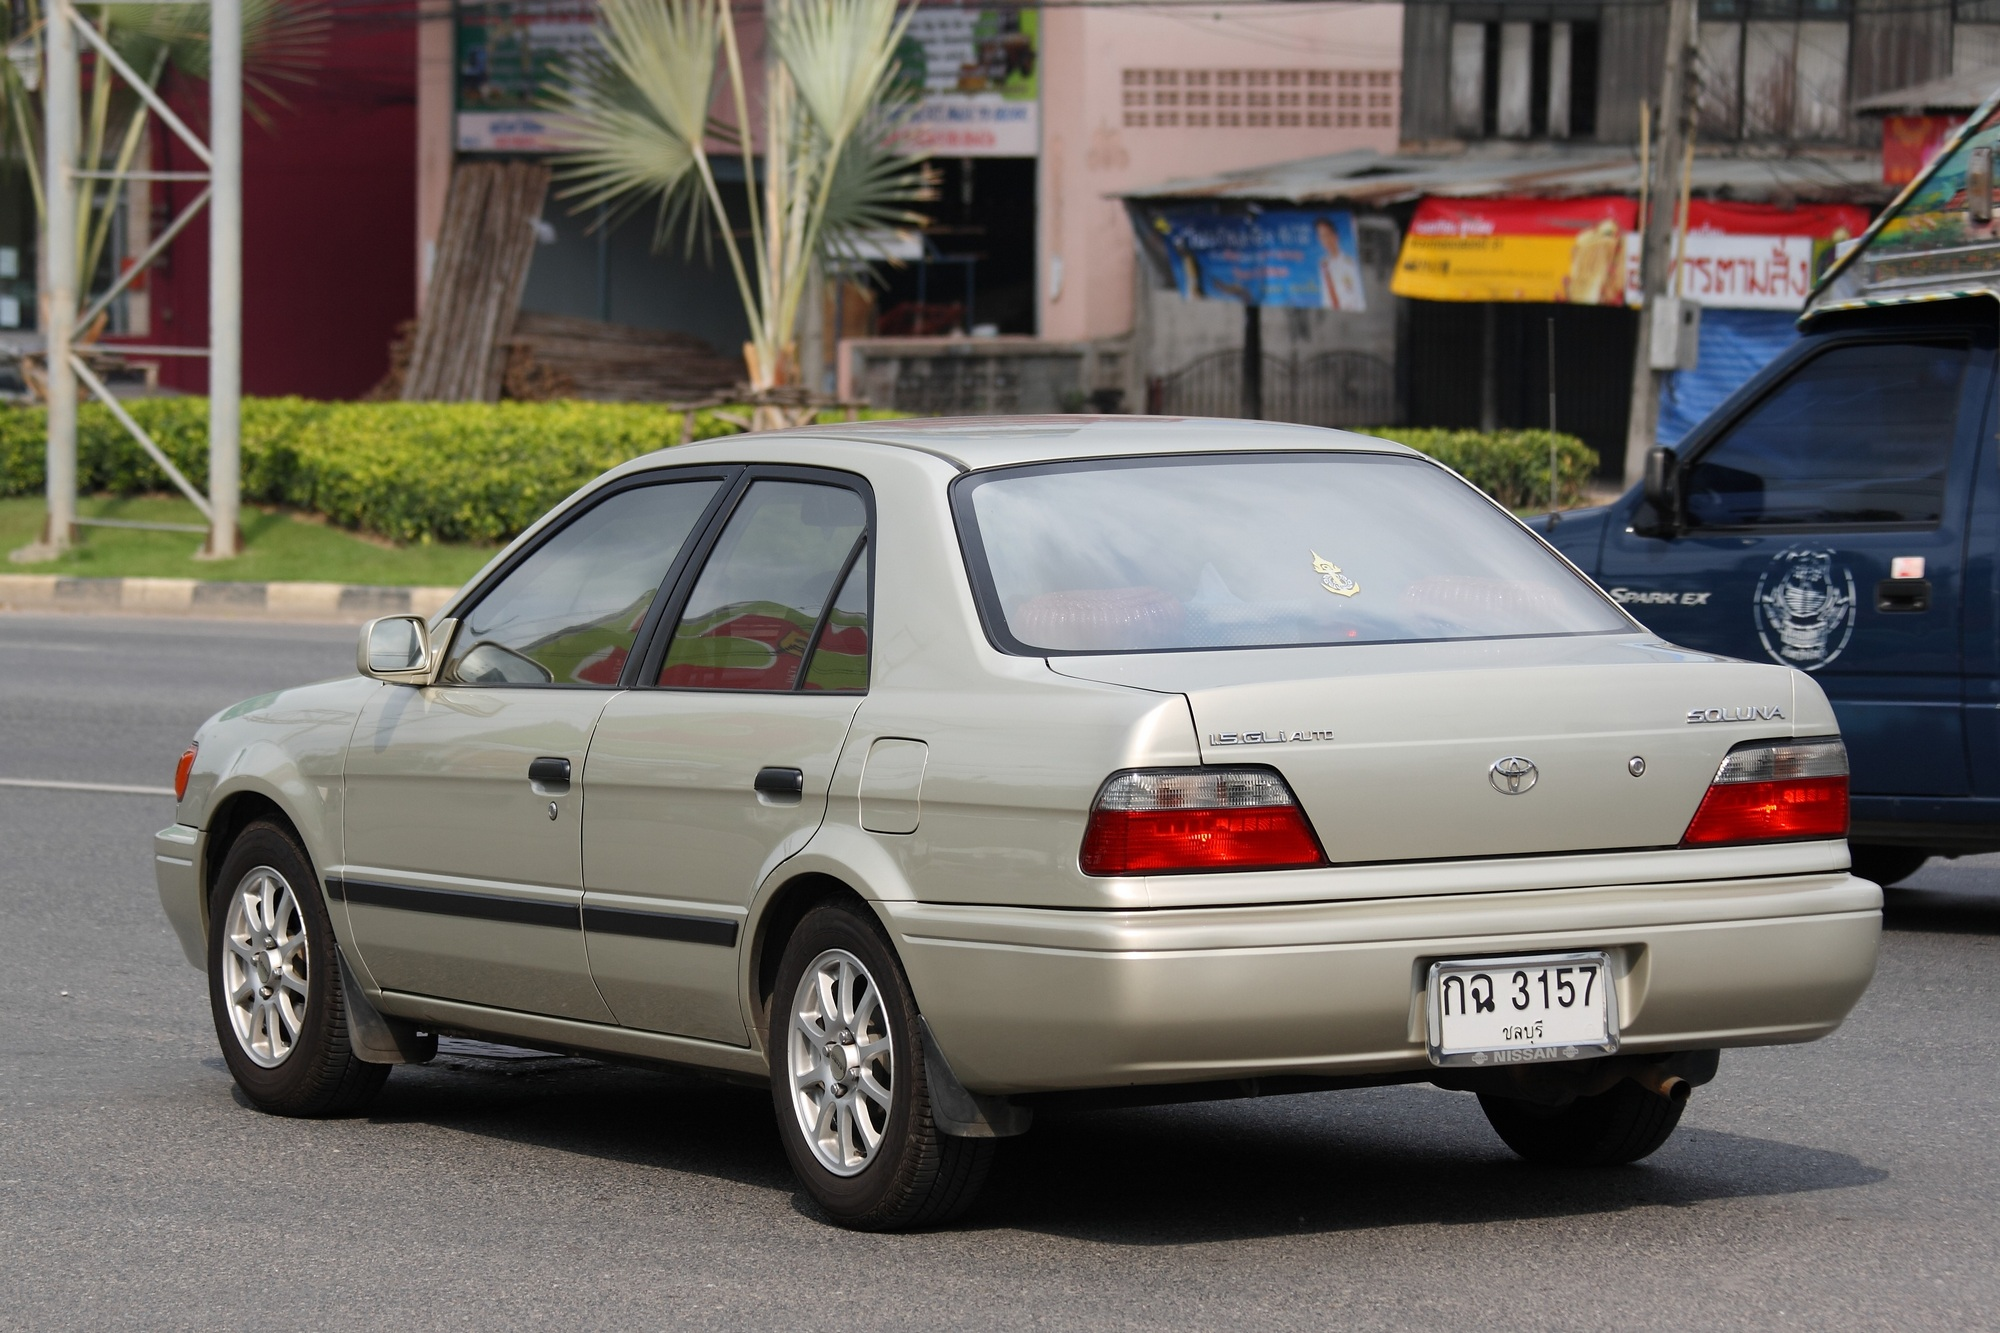 file toyota soluna in pattaya jpg   wikimedia commons